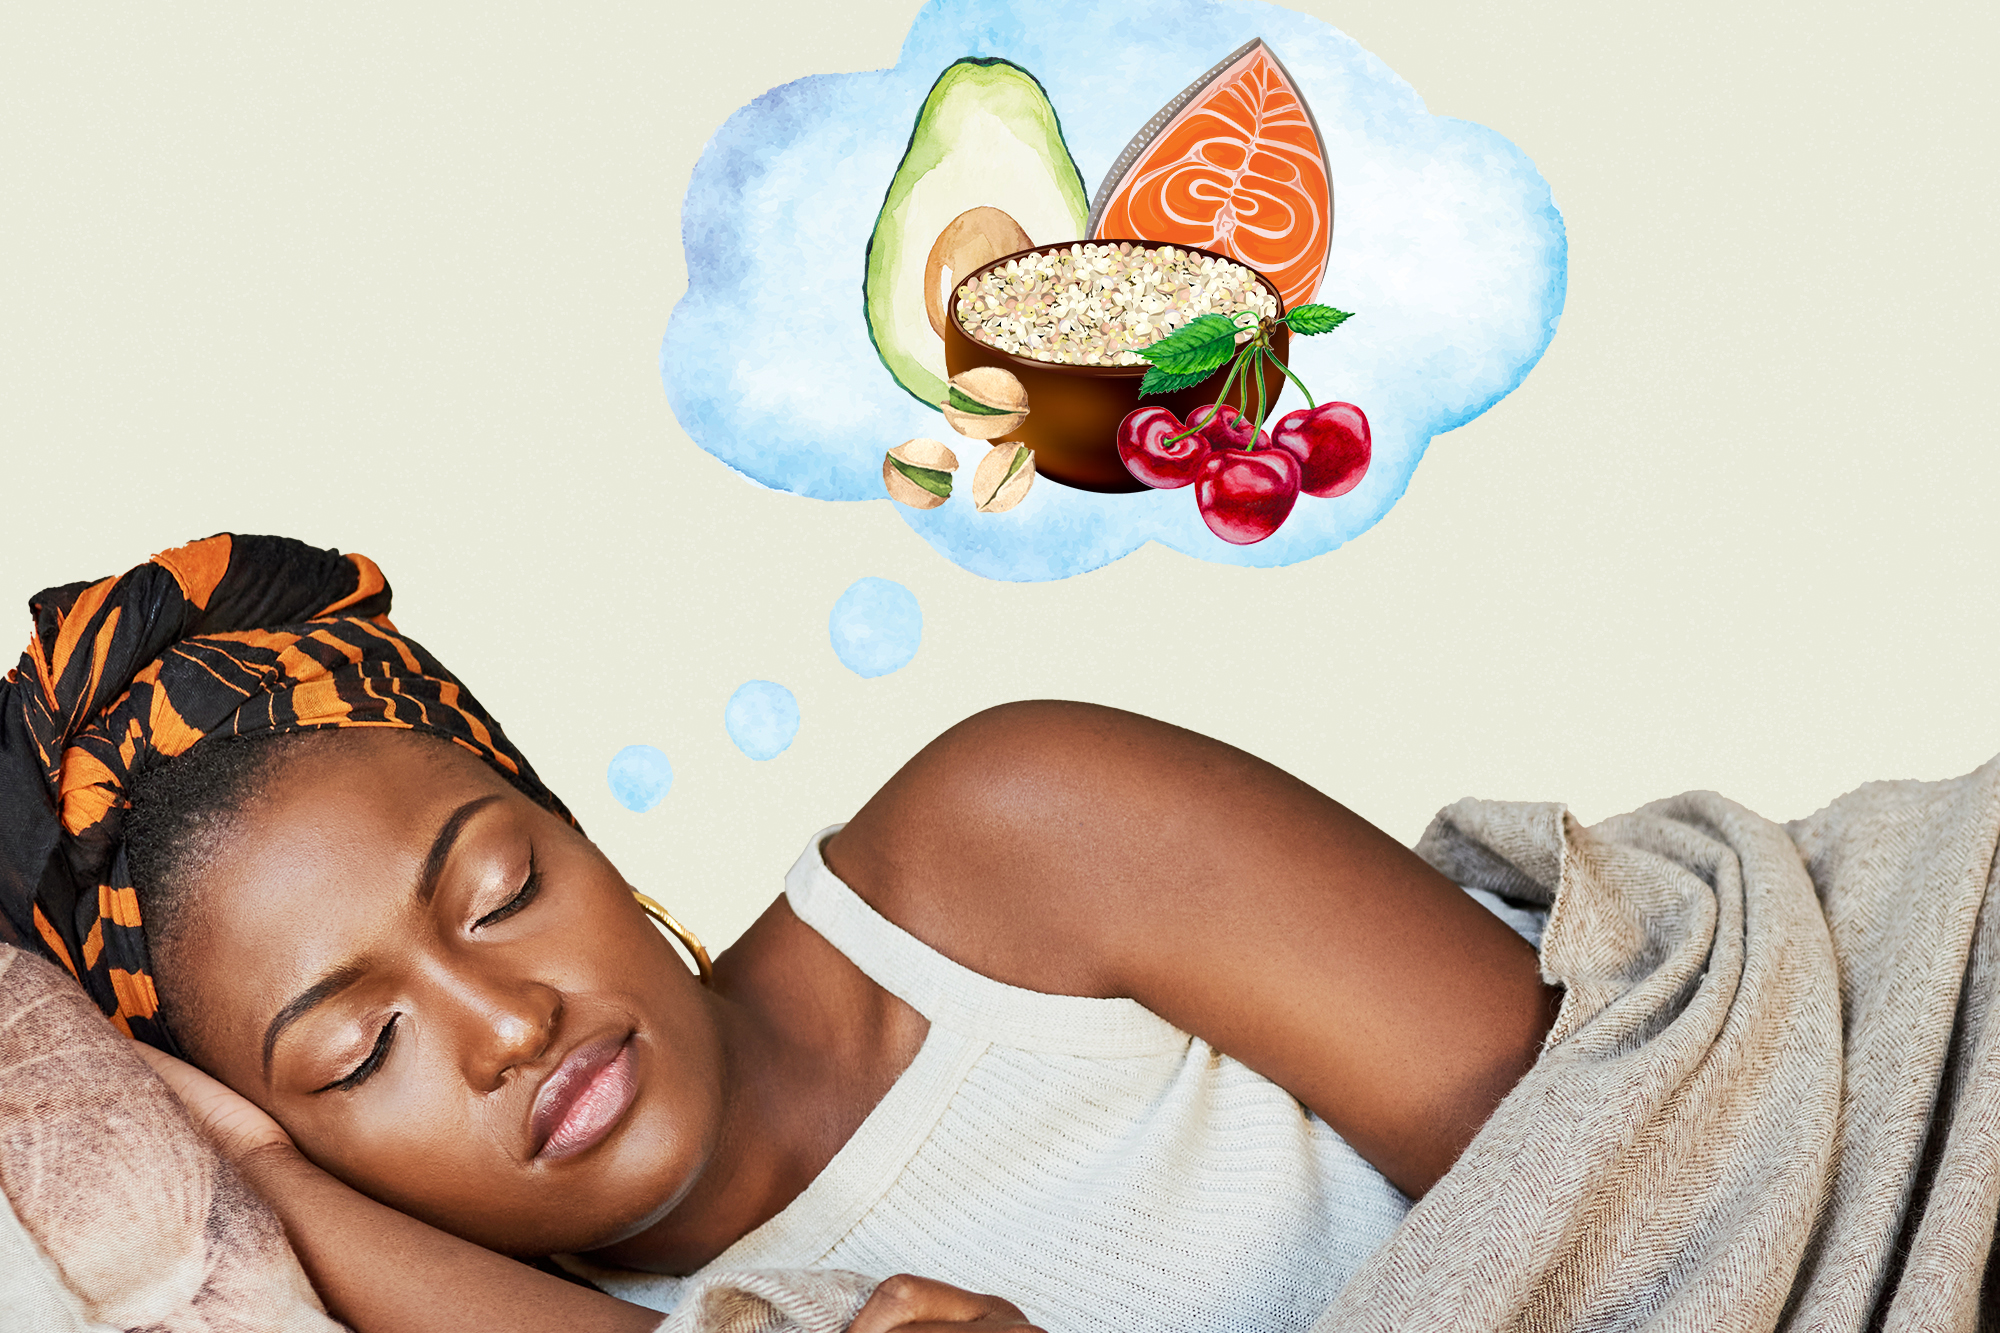 A woman sleeping with a thought bubble with food items from the Mediterranean diet